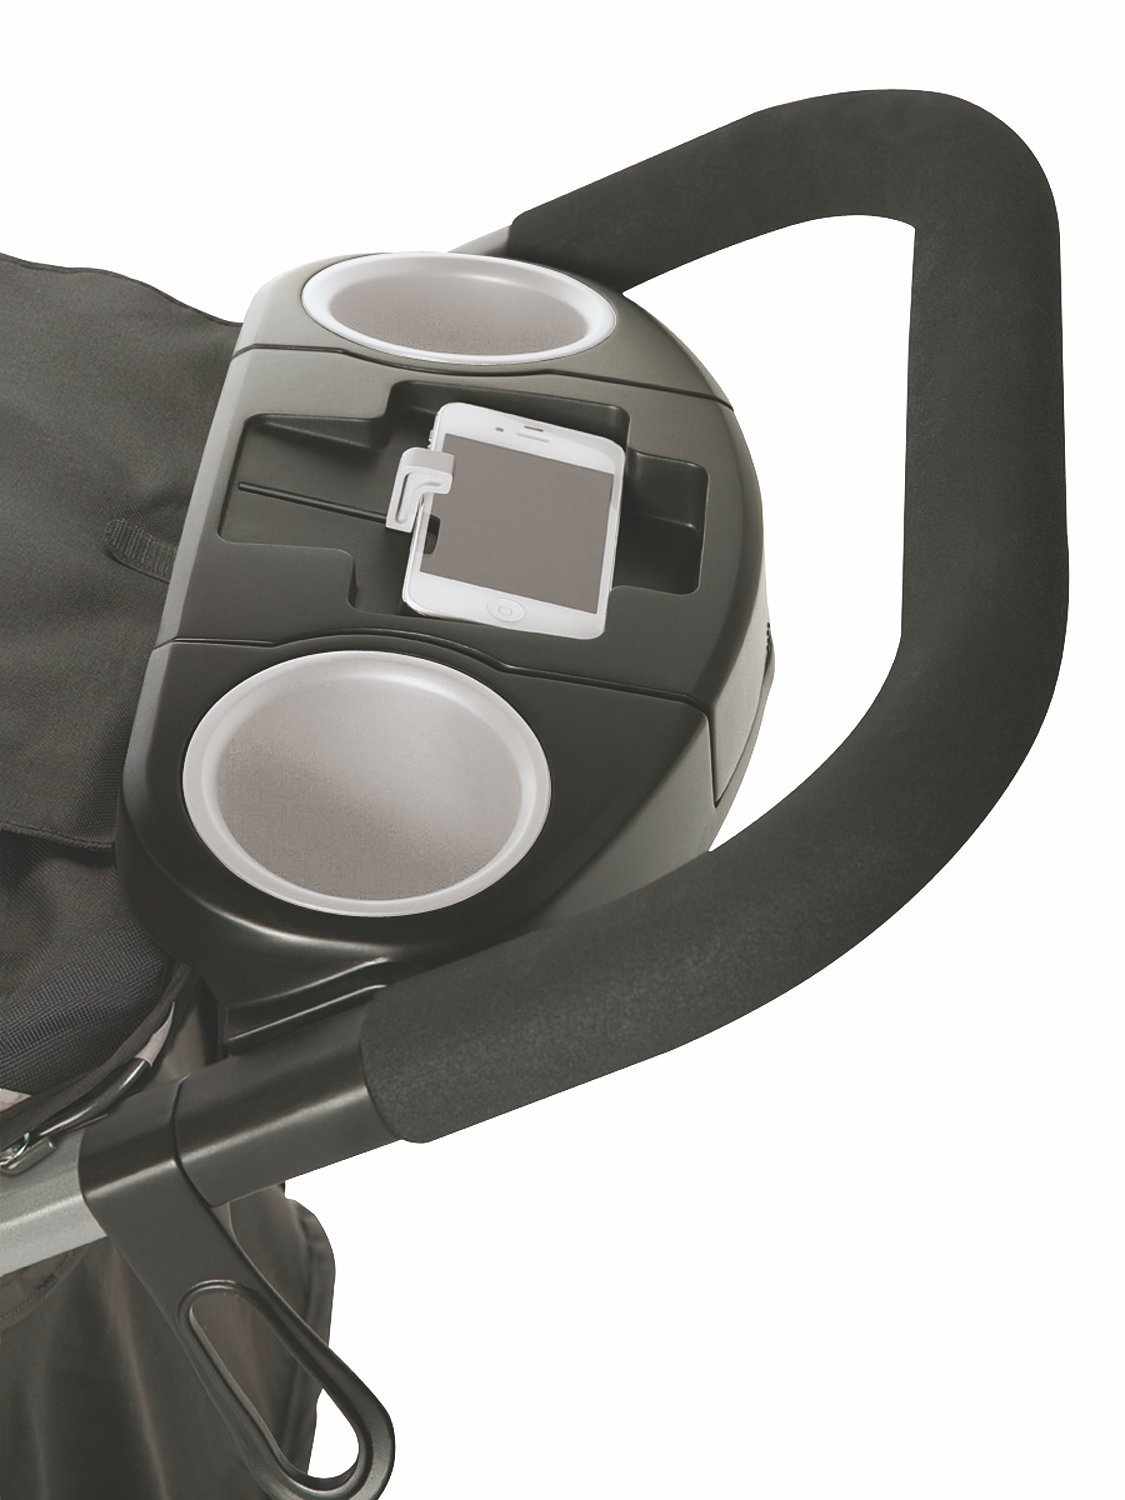 Buy Graco Fastaction Fold Jogger Click Connect Baby Travel System Gotham One Size Online At Low Prices In India